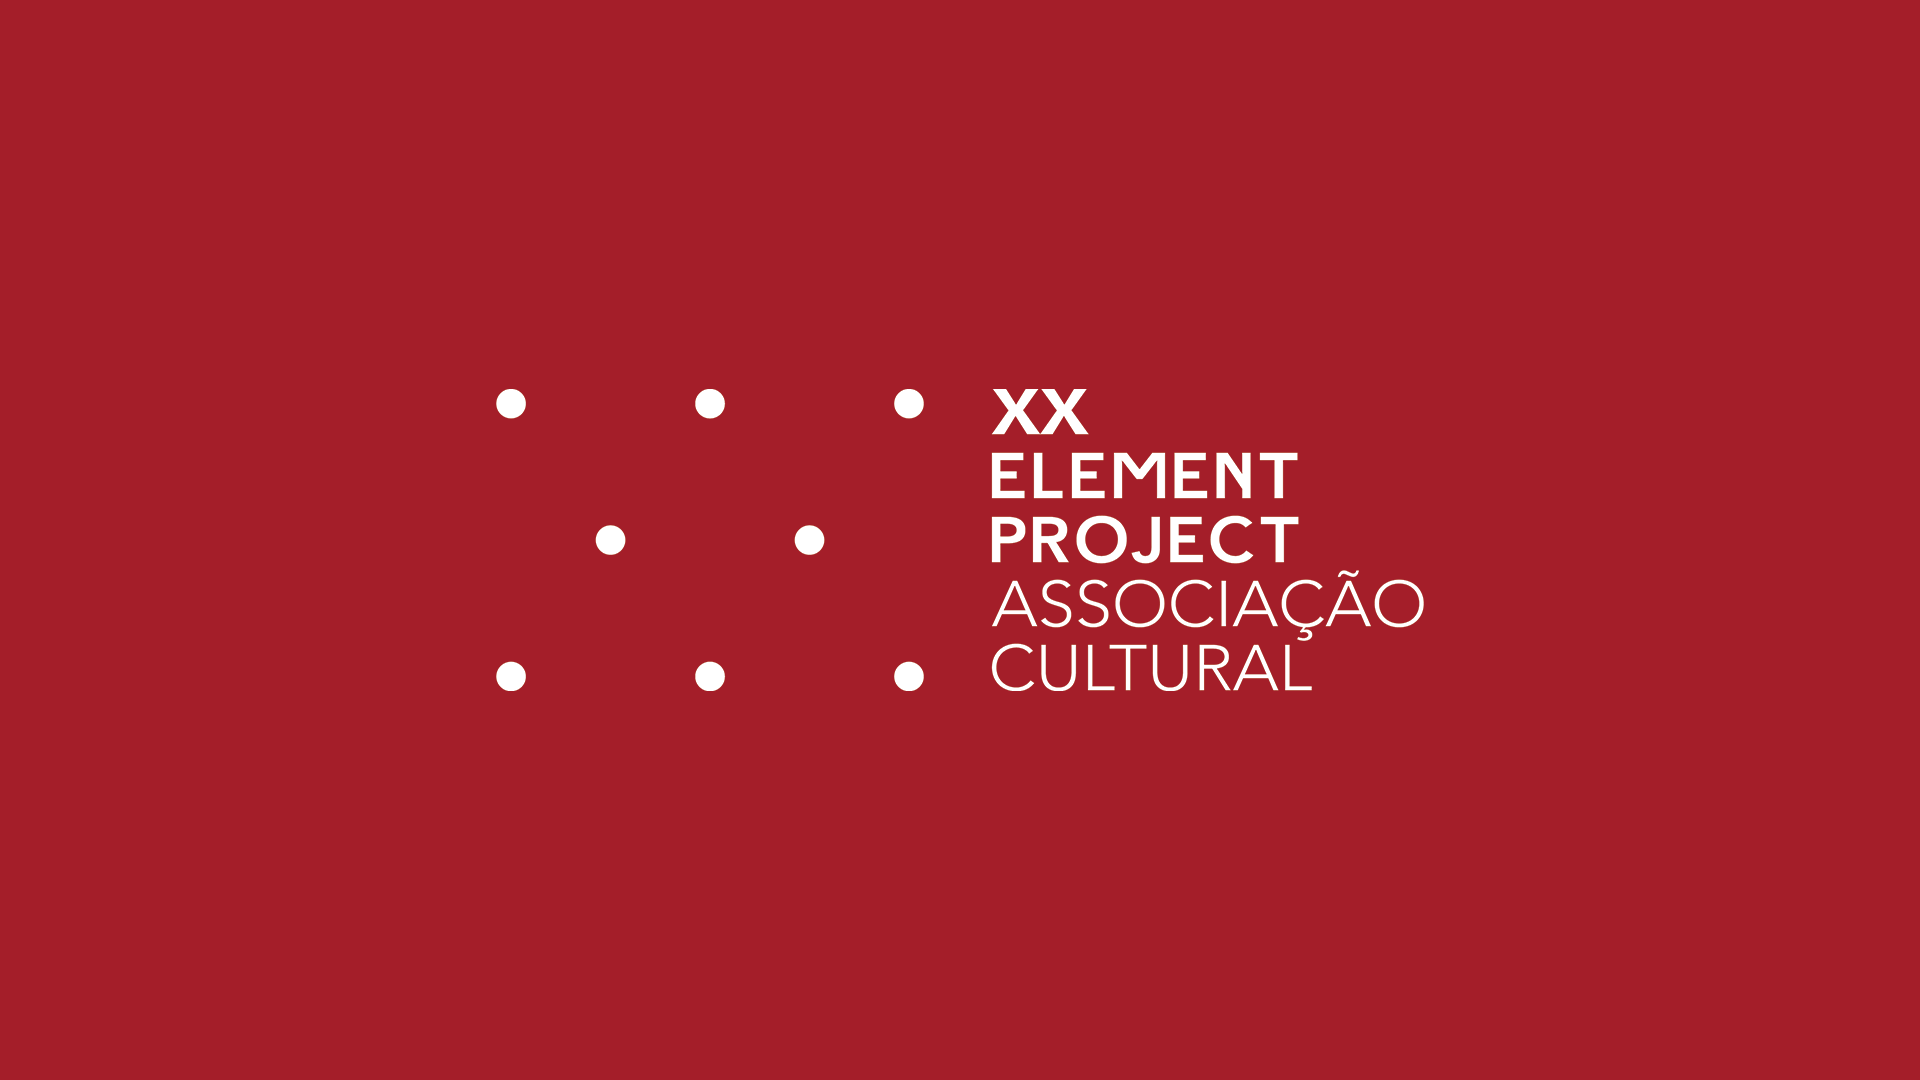 XX Element Project